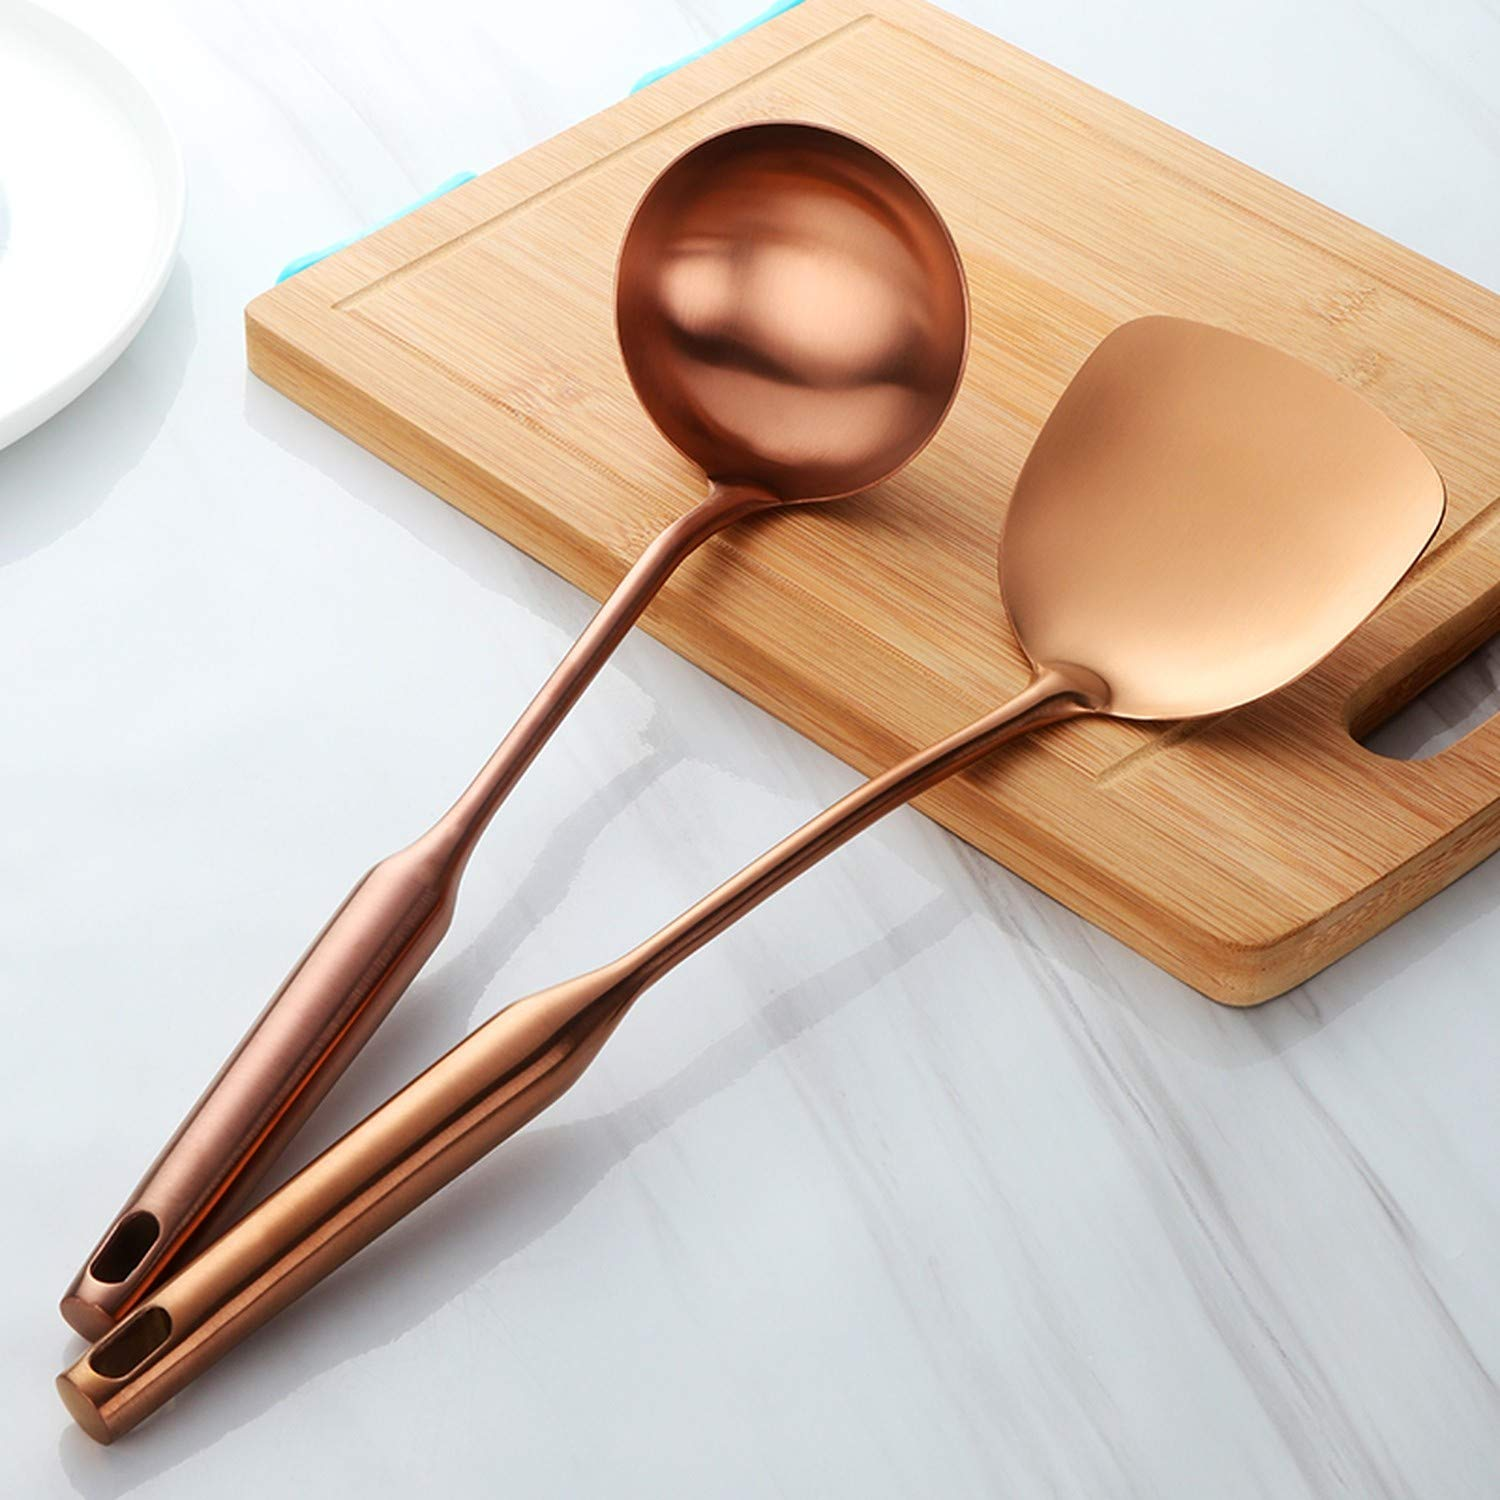 Amazon.com: 2 Pcs Stainless Steel Turner And Soup Ladle Gold ... on ideas to hang shoes, ideas to hang mirrors, ideas to hang jewelry, ideas to hang blankets, ideas to hang plates, ideas to hang hats, ideas to hang ornaments, ideas to hang baskets, ideas to hang pots and pans, ideas to hang clothes,